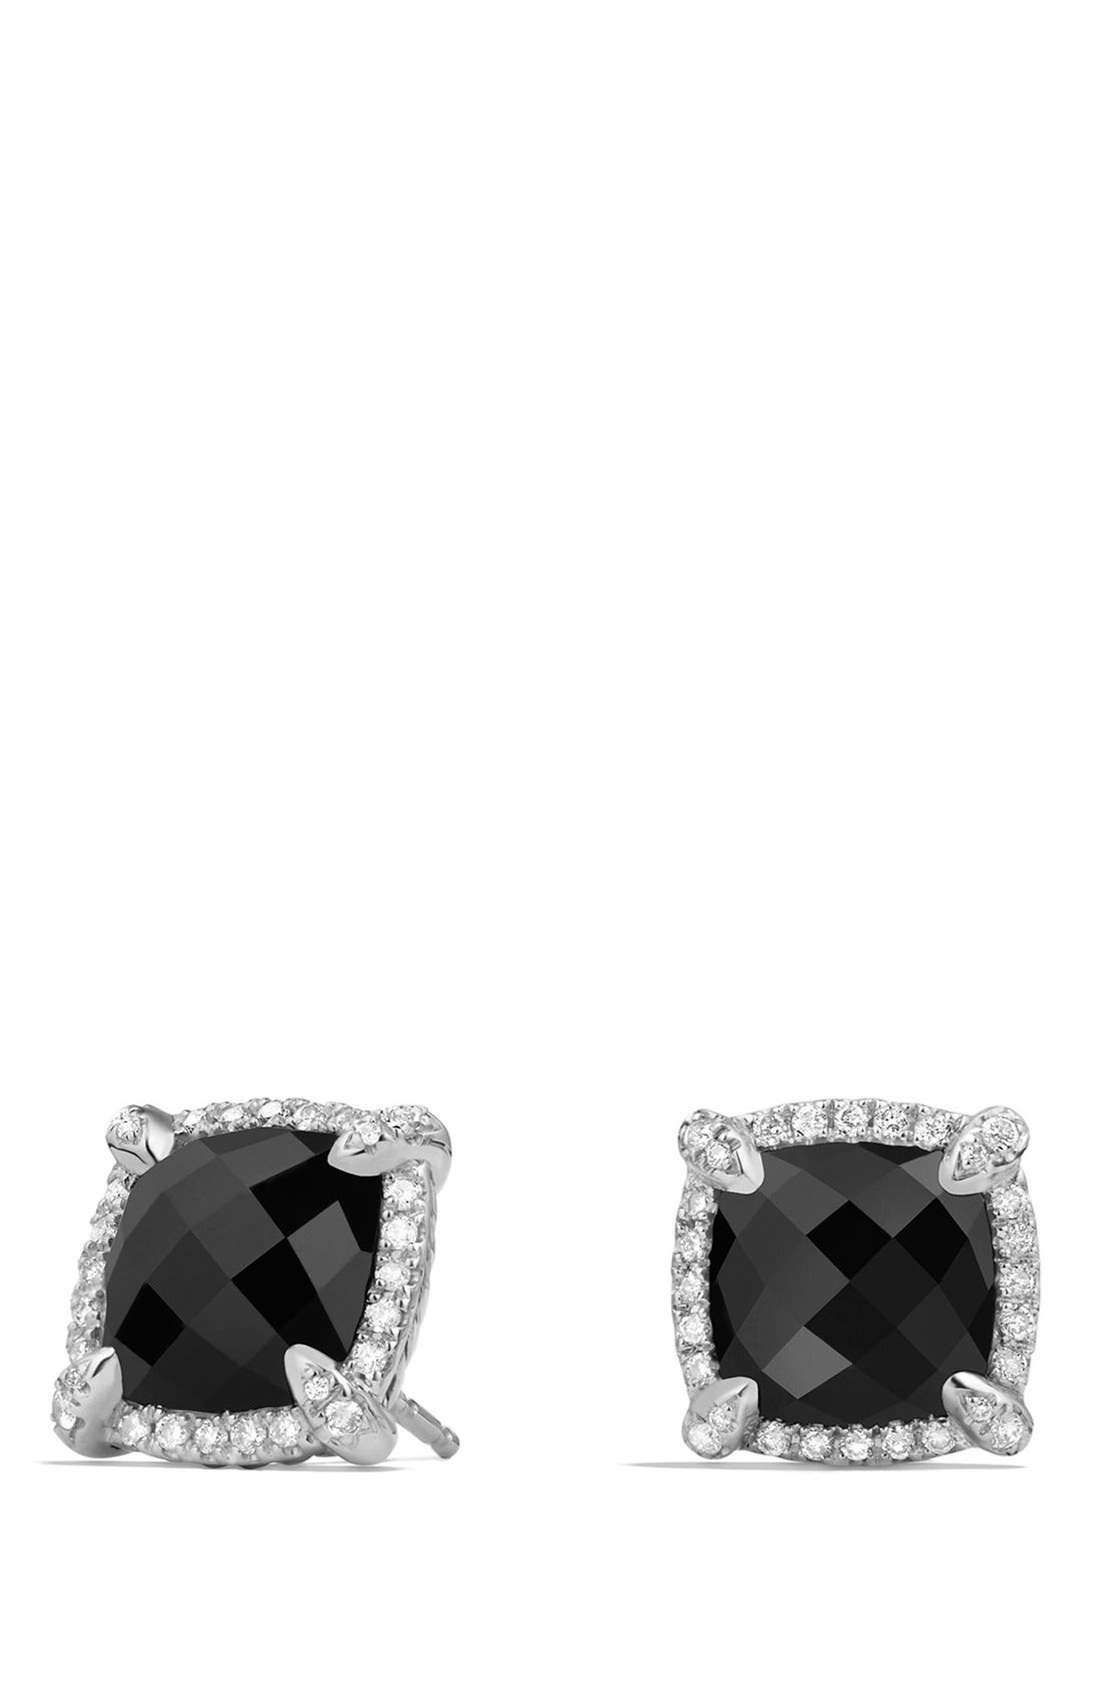 David Yurman Ch¢telaine Pavé Bezel Stud Earrings with Diamonds